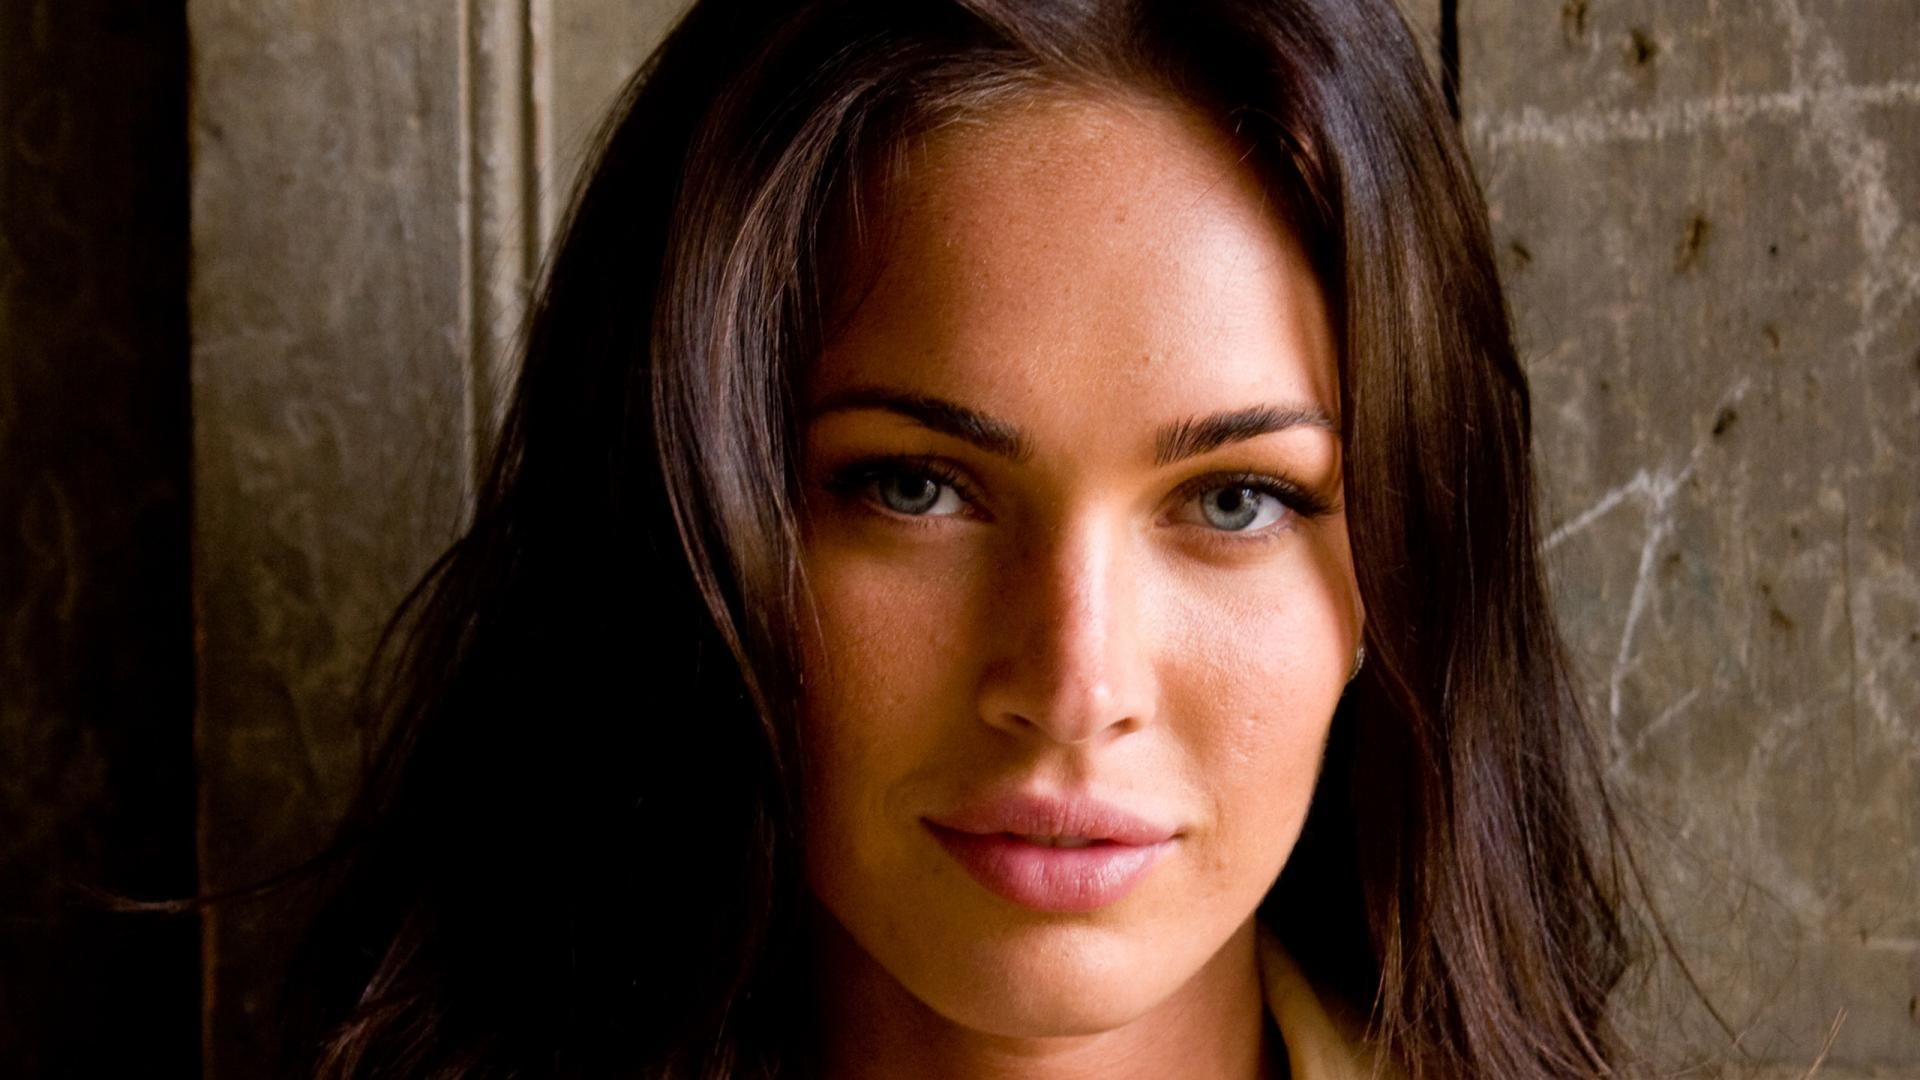 megan fox hd wallpapers p wallpaper 1600×1200 megan fox hd